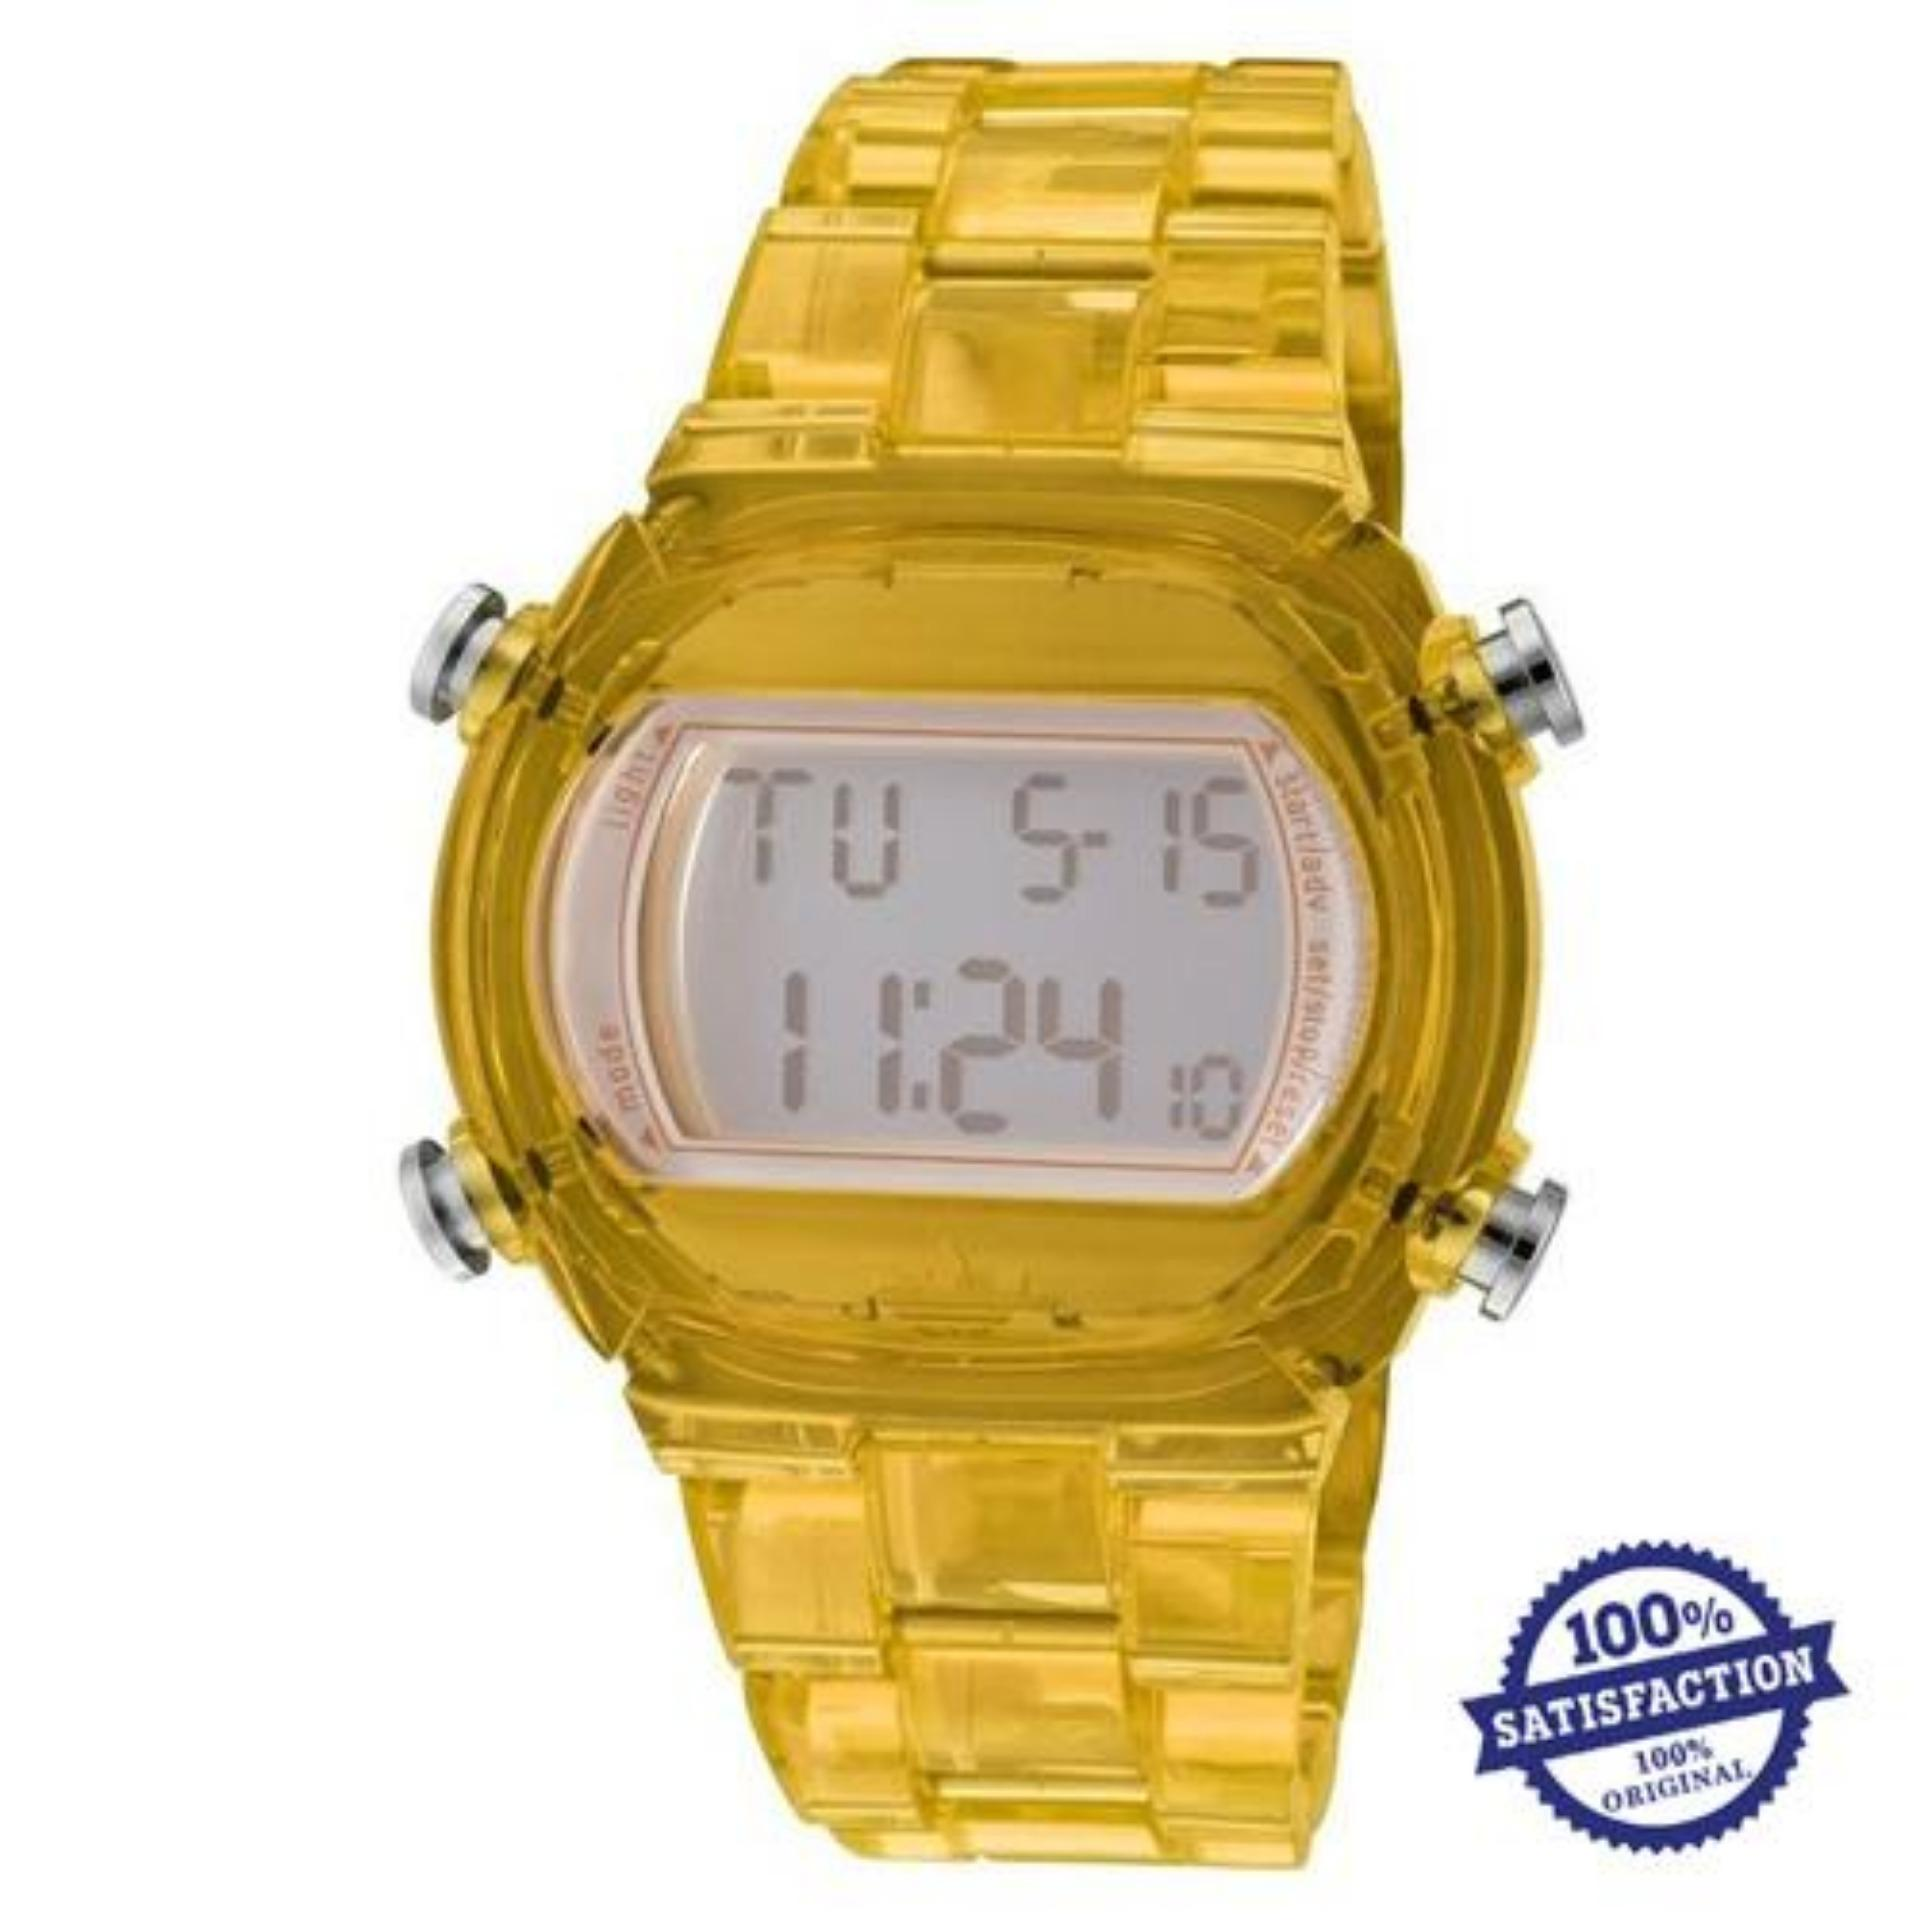 Adidas Watches For Women Adh3017 Aberdeen Red Dial Rubber Strap Philippines Sale Prices Reviews Lazada 1920x1920